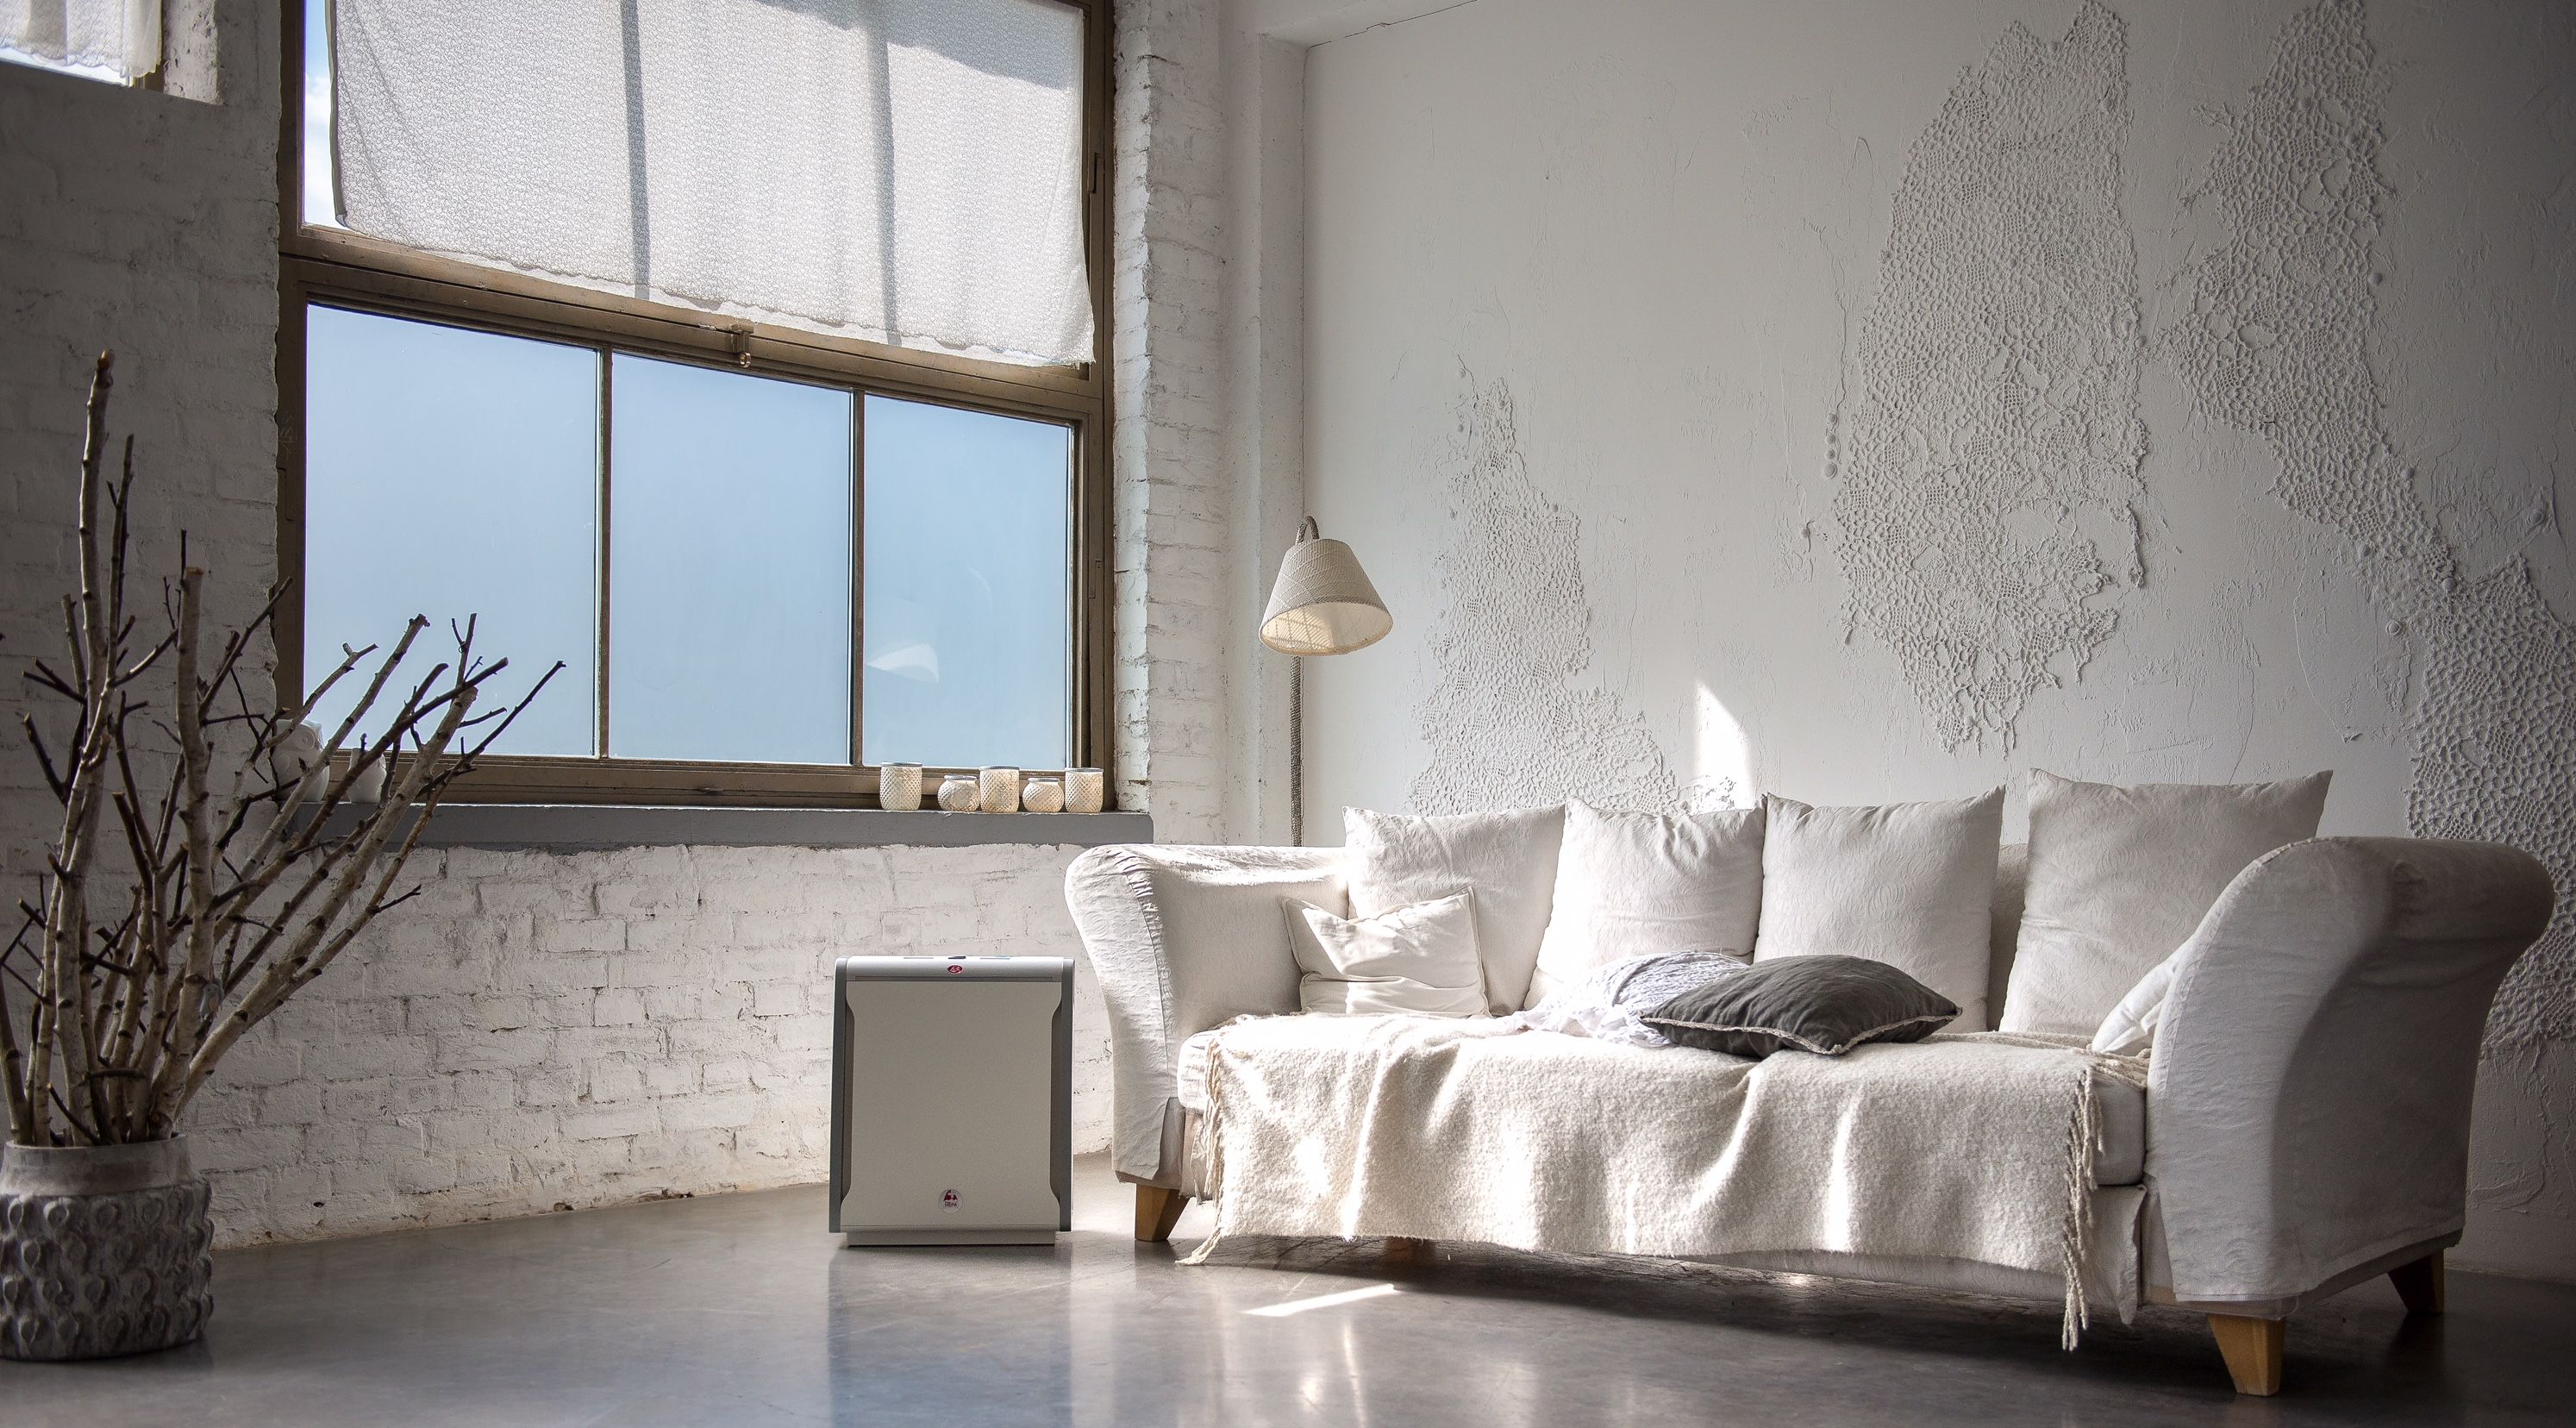 Minimalistindustrial loft with raw, white wall and Lux